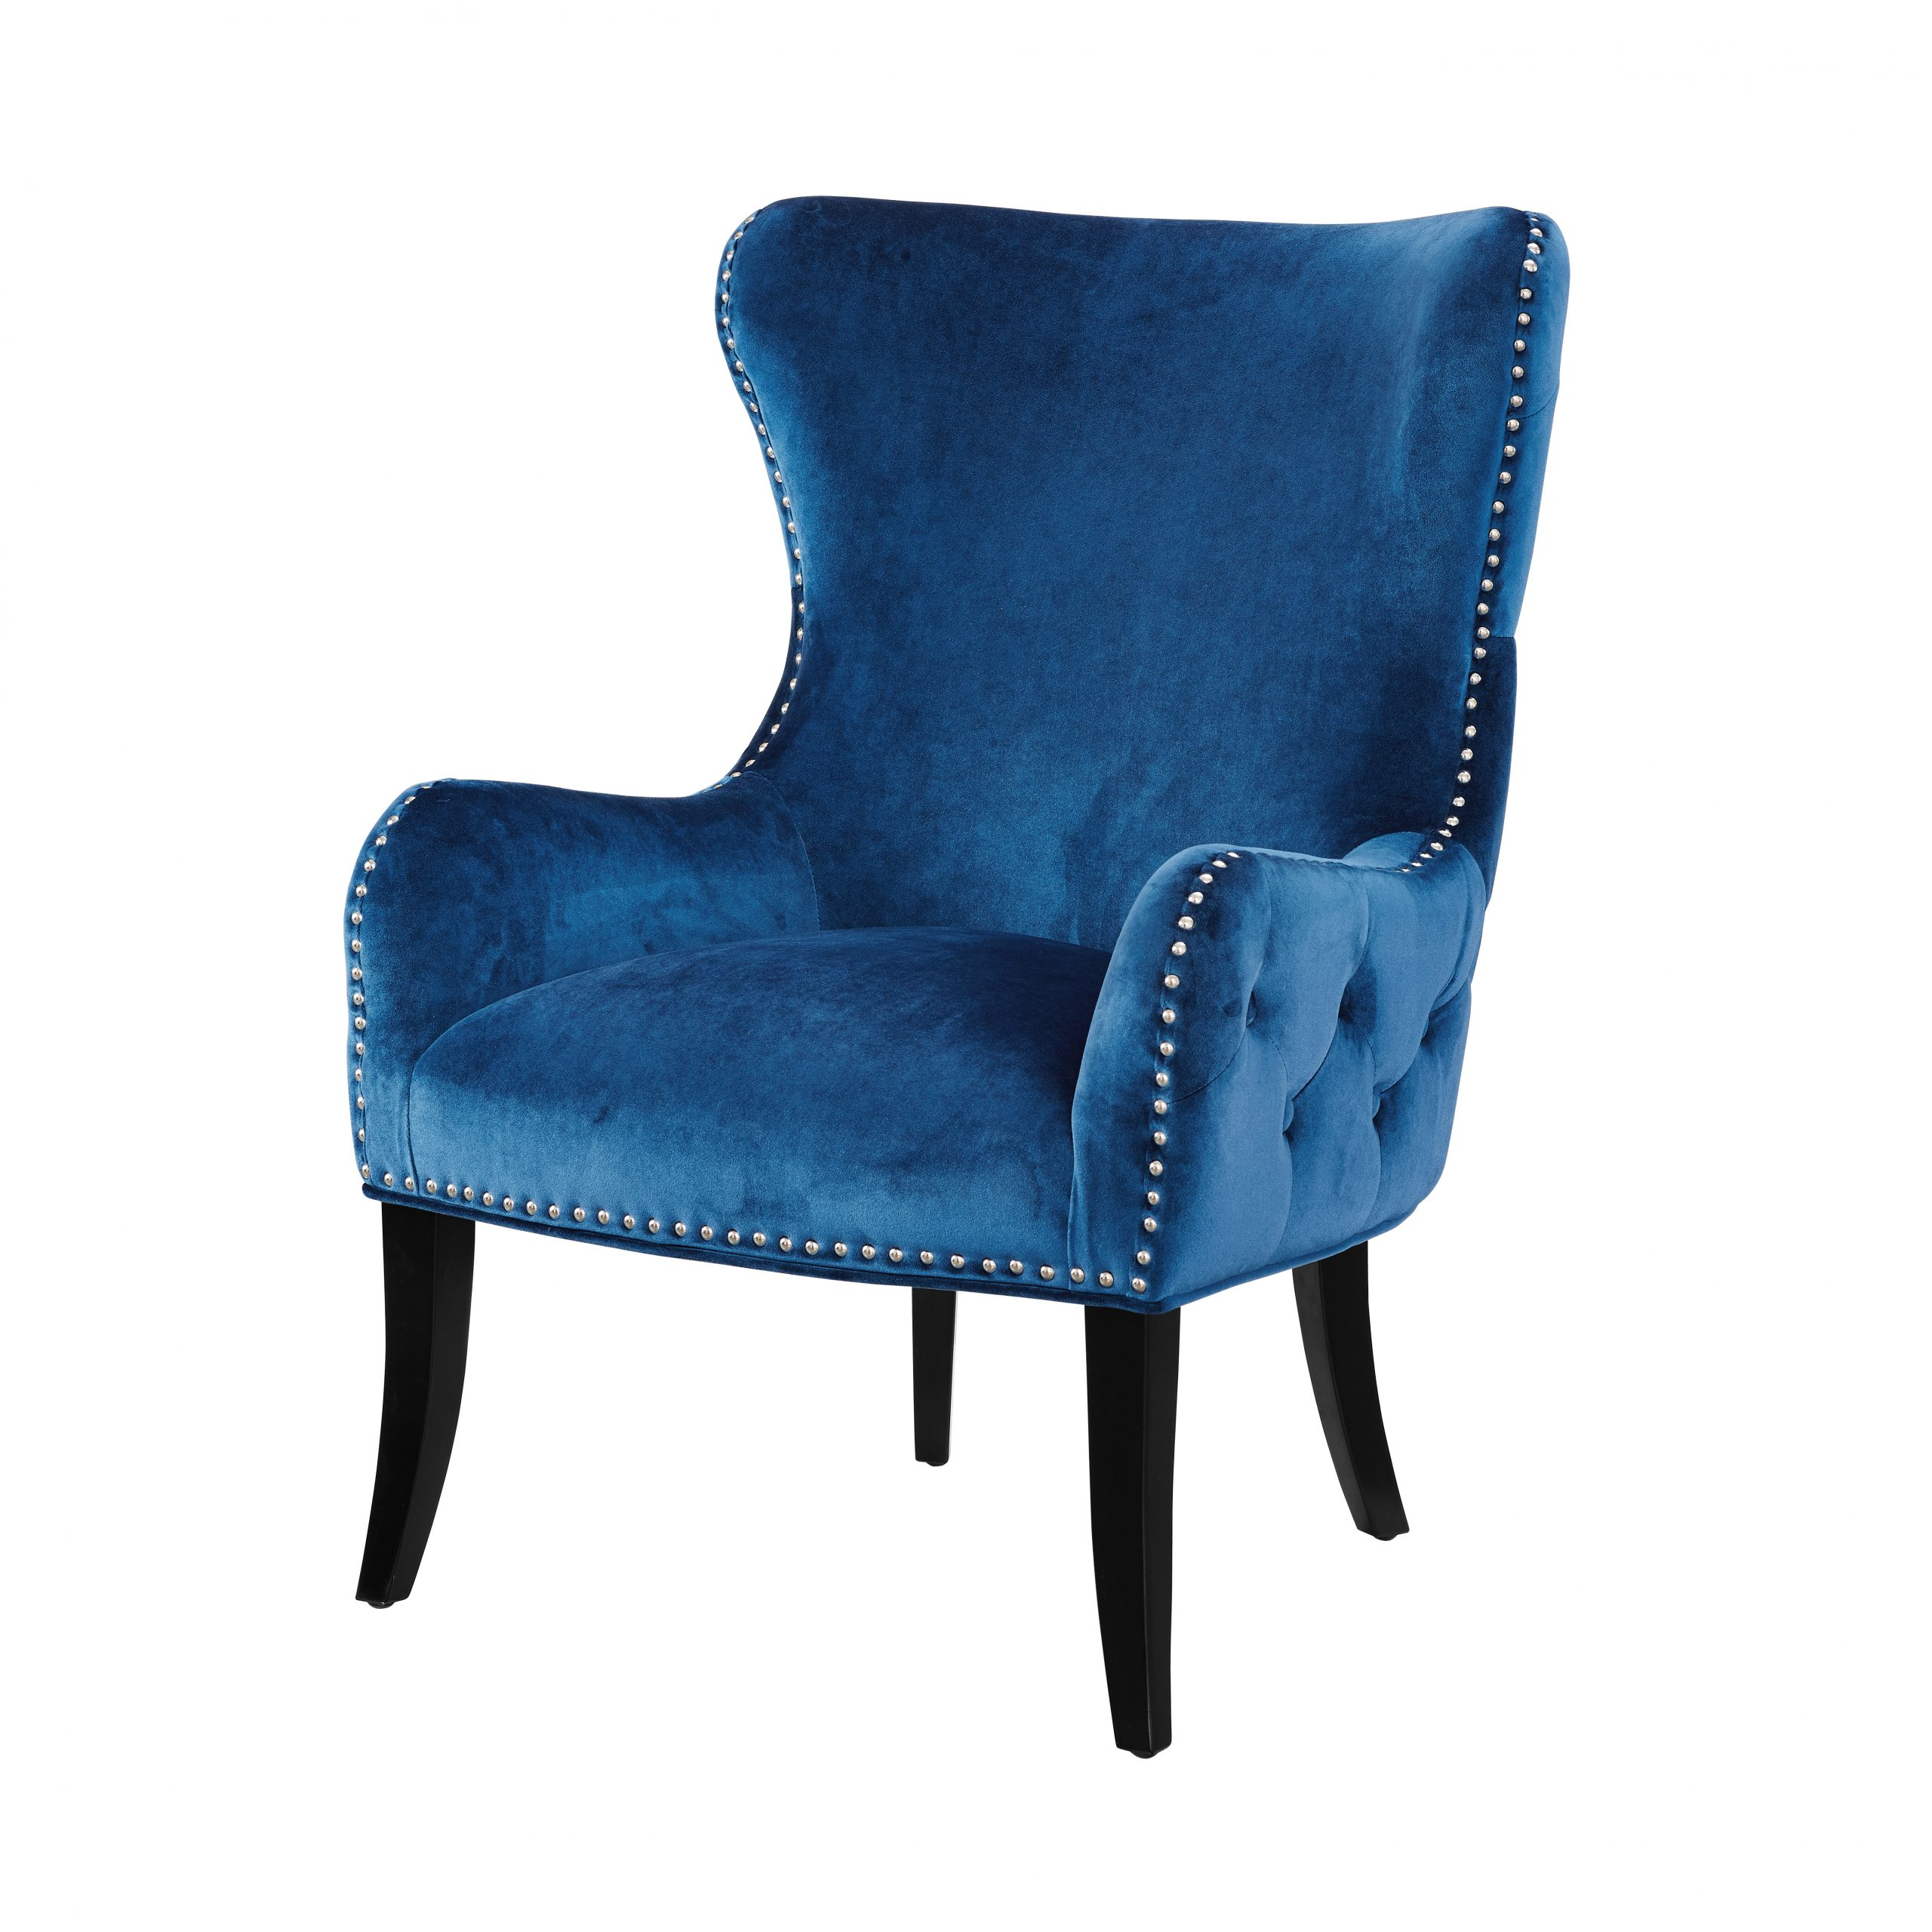 Wayfair Pertaining To Busti Wingback Chairs (View 17 of 20)